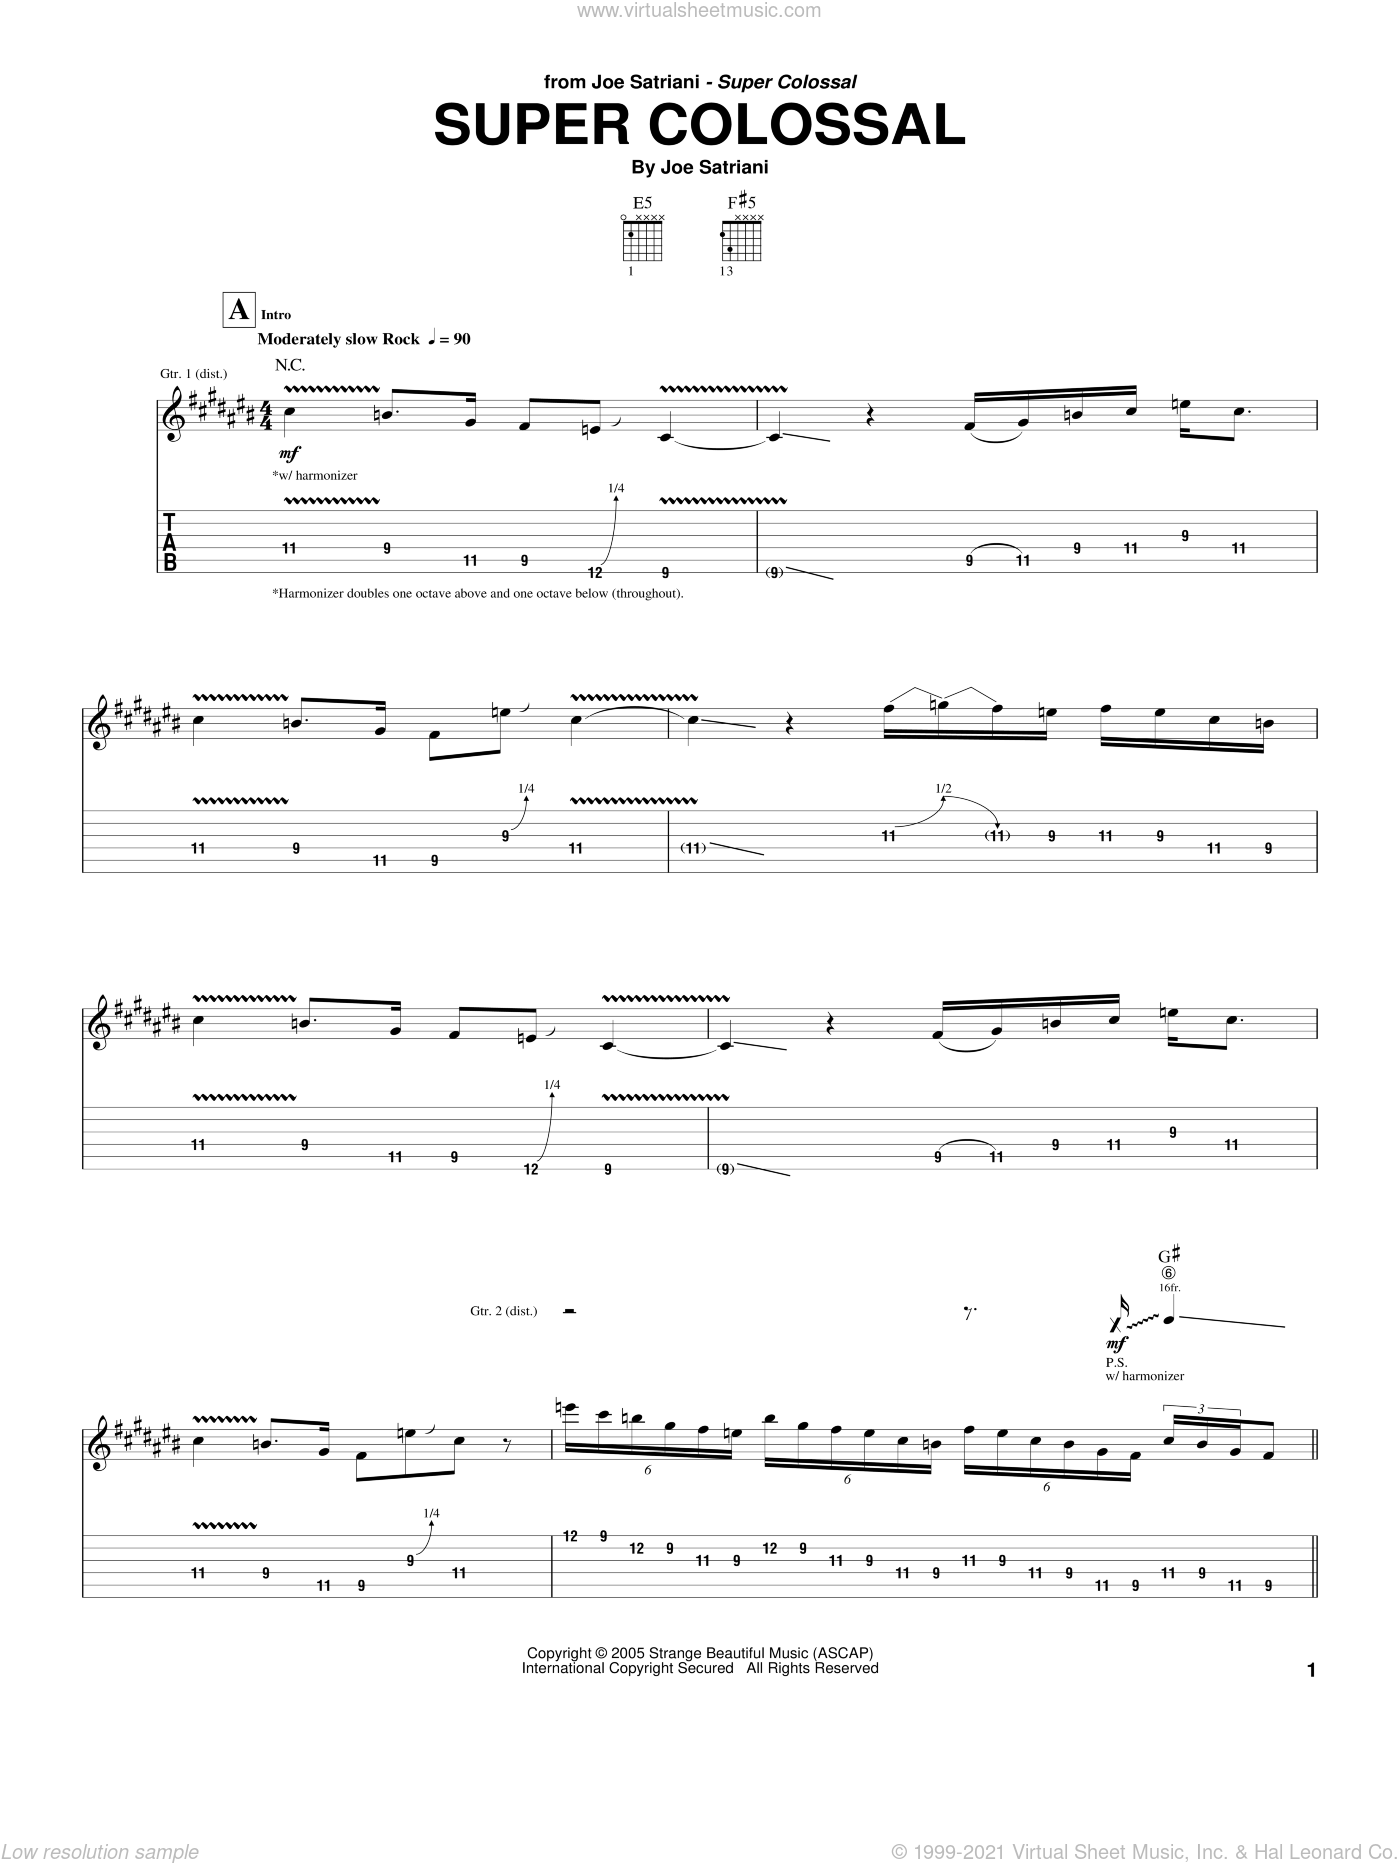 Super Colossal sheet music for guitar (tablature) by Joe Satriani, intermediate skill level